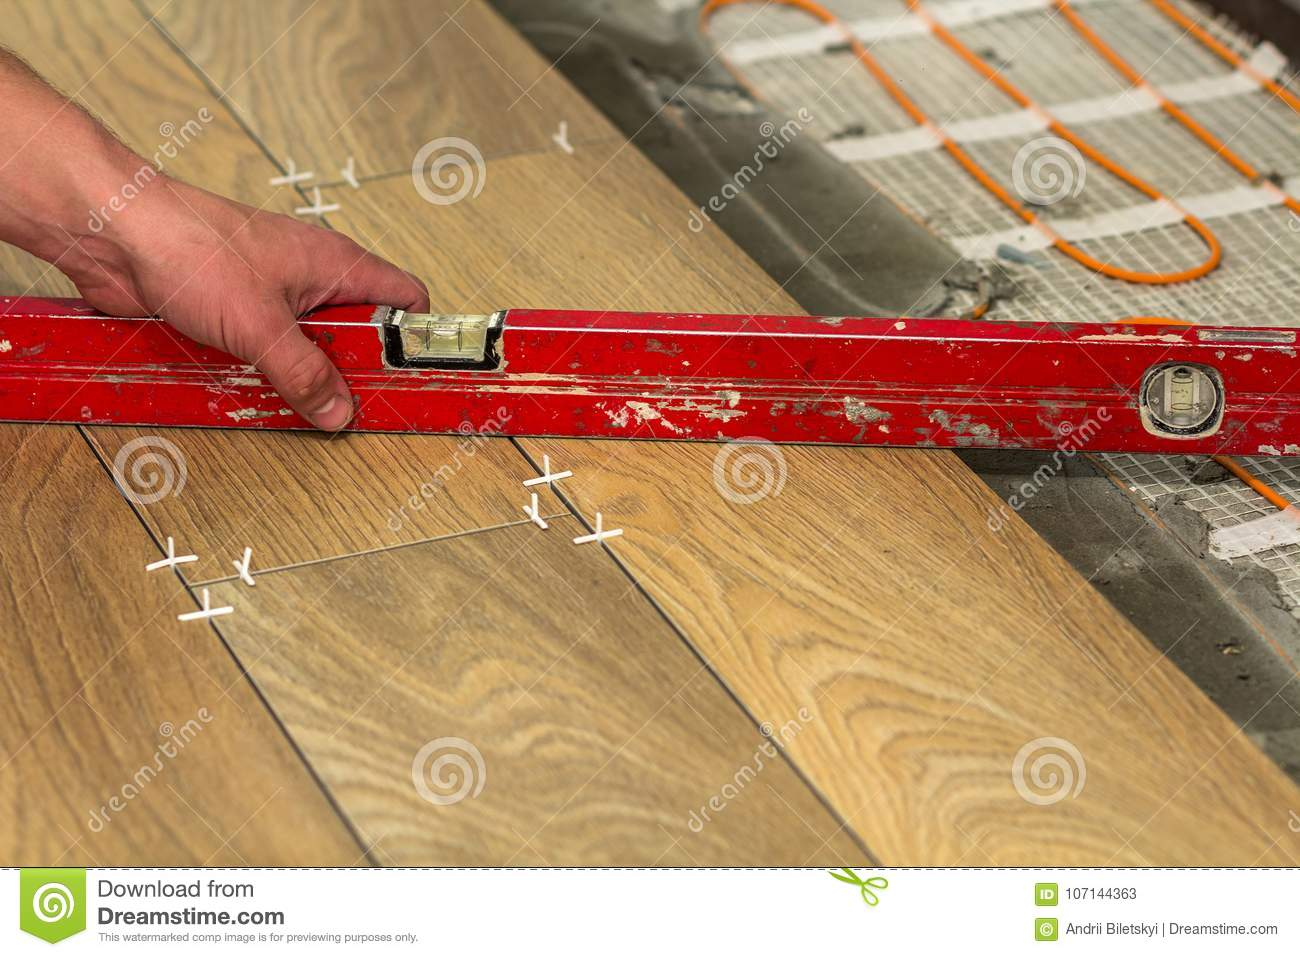 Installation of ceramic tiles and heating elements in warm tile installation of ceramic tiles and heating elements in warm tile home building royalty free stock photo download installation of ceramic tiles dailygadgetfo Gallery